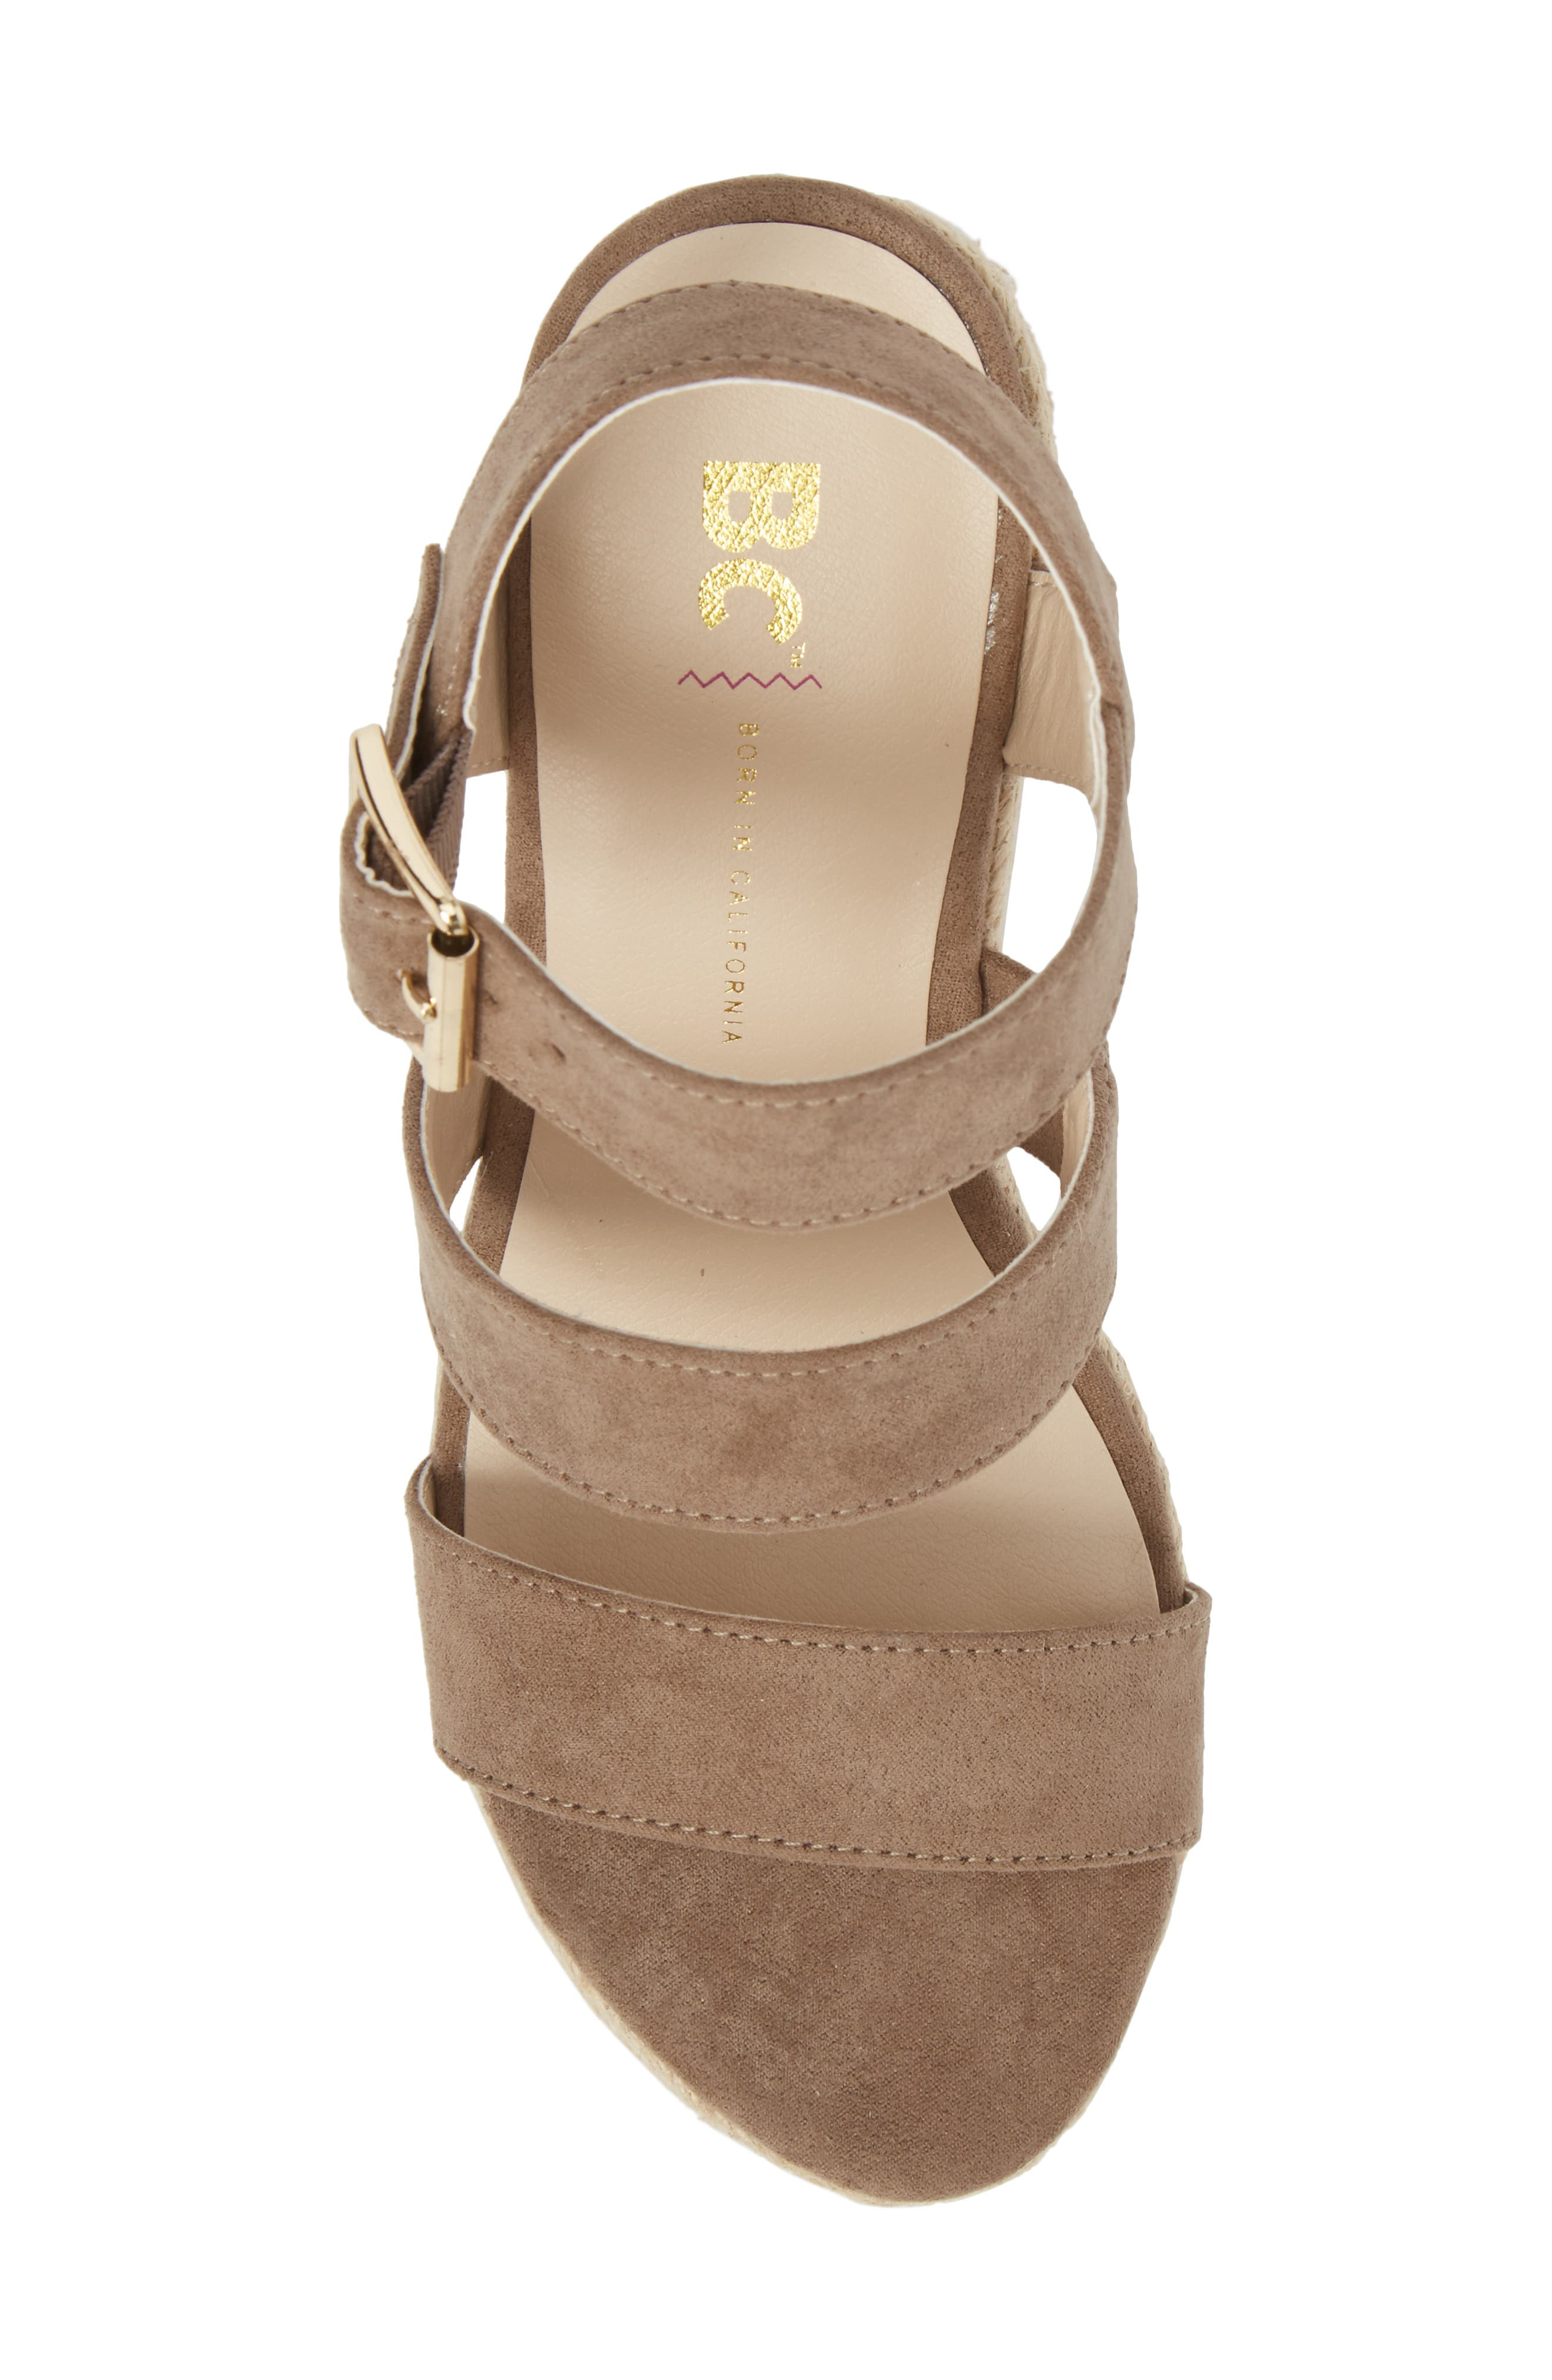 Snack Bar Espadrille Wedge Sandal,                             Alternate thumbnail 5, color,                             Taupe Suede